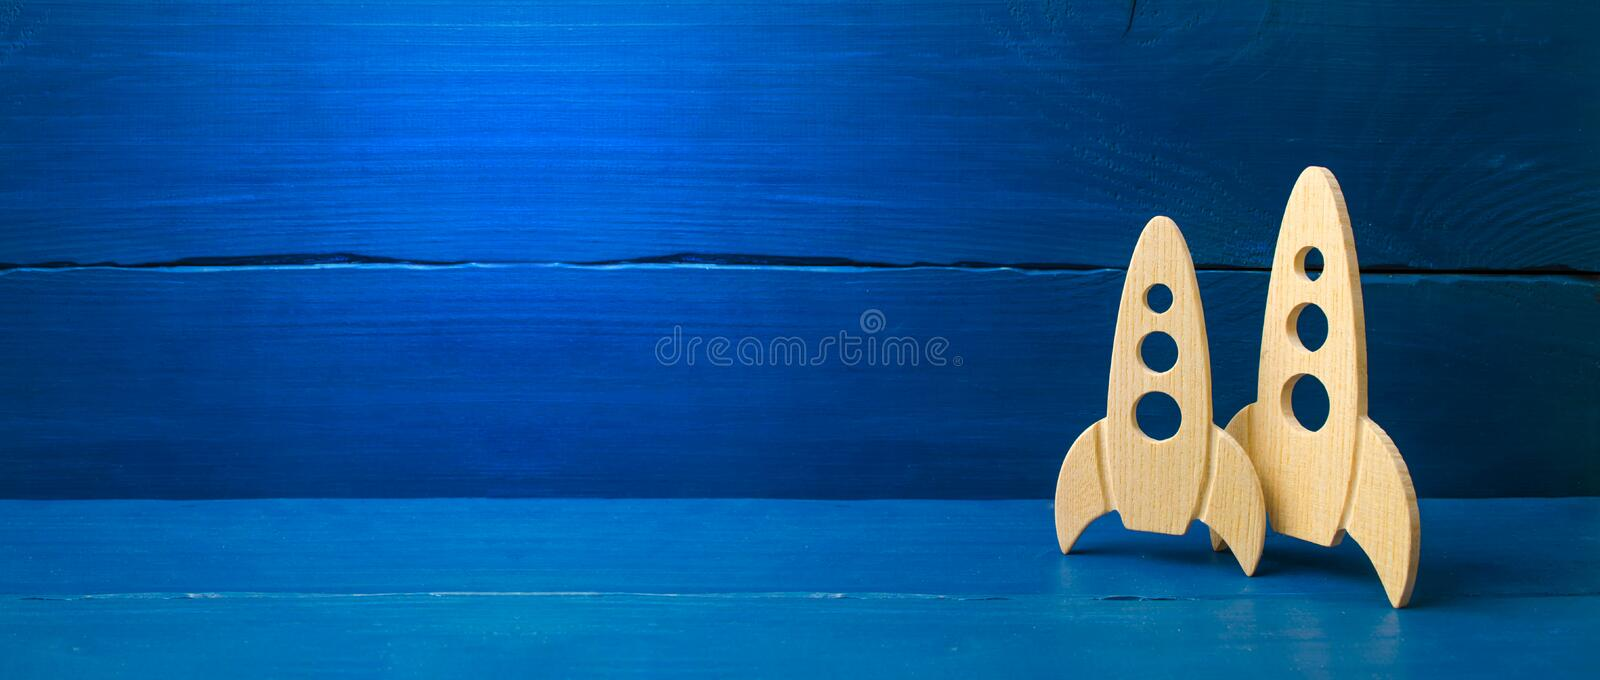 Wooden space rocket on a blue background. The concept of minimalism, high technologies and aspirations to conquer outer space. Business start-up. Education royalty free stock photos